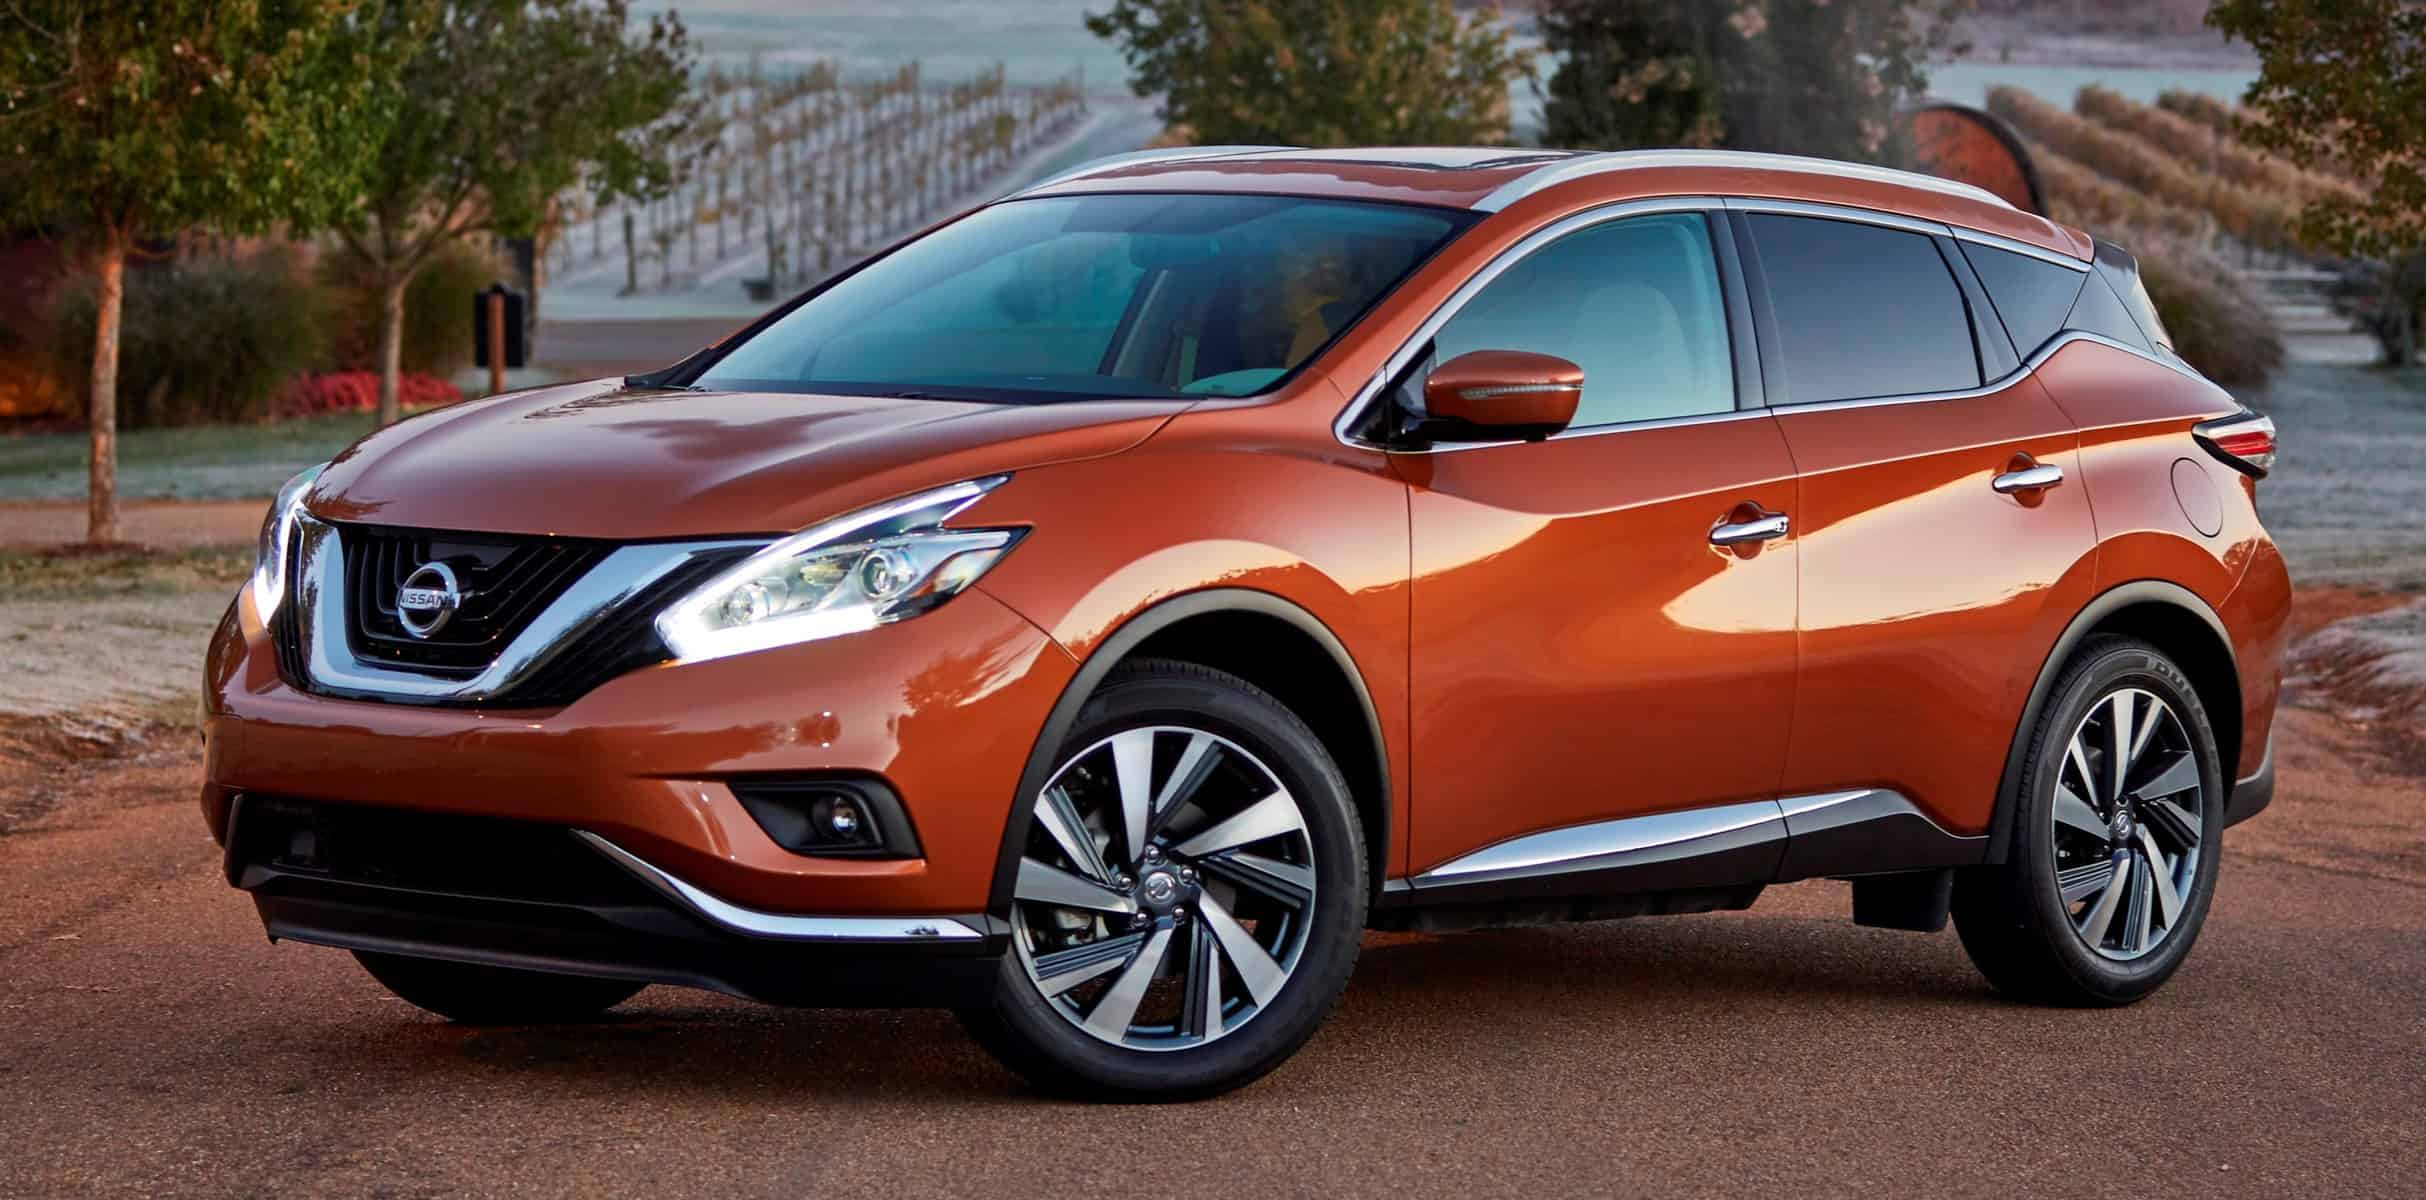 2017 Nissan Murano Review Global Cars Brands